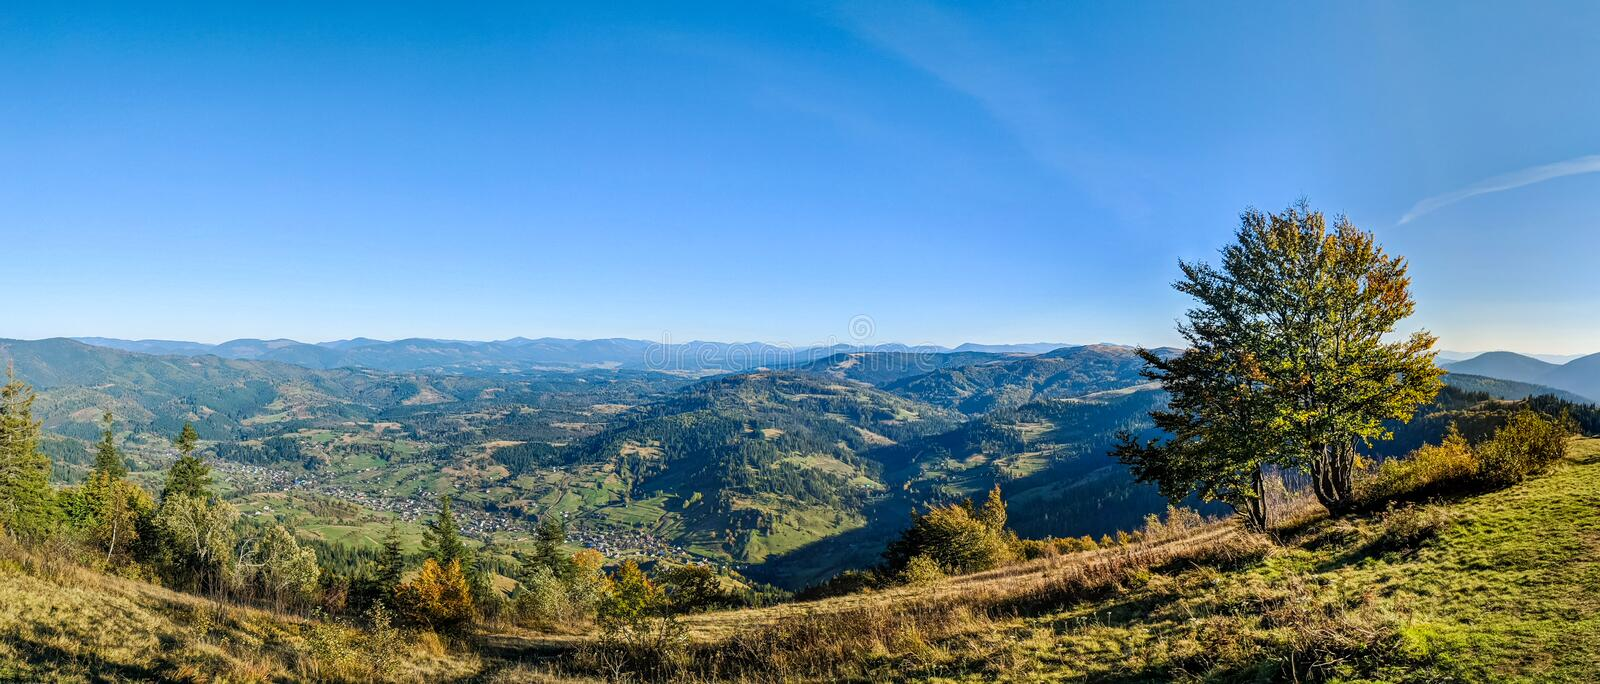 Landscape with carpathian mountains in the spring season. Carpathian mountains in sunny day in the autumn season ukraine landscape forest beautiful green nature stock photography